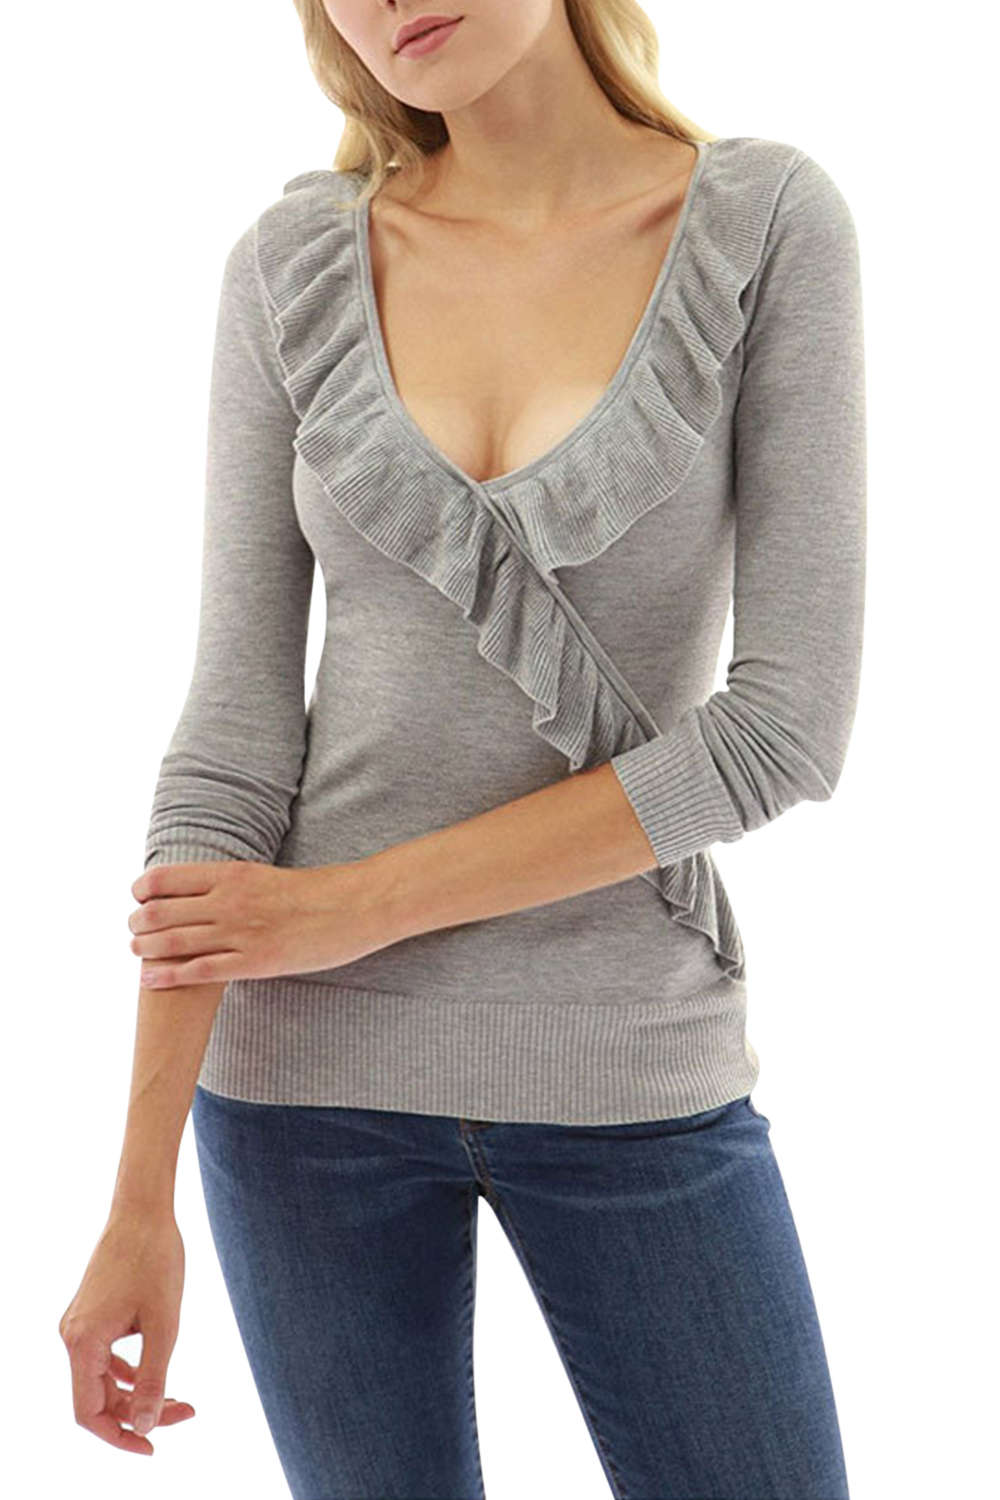 Iyasson Deep V-neck Ruffled Trim Neckline Long Sleeve T-shirt